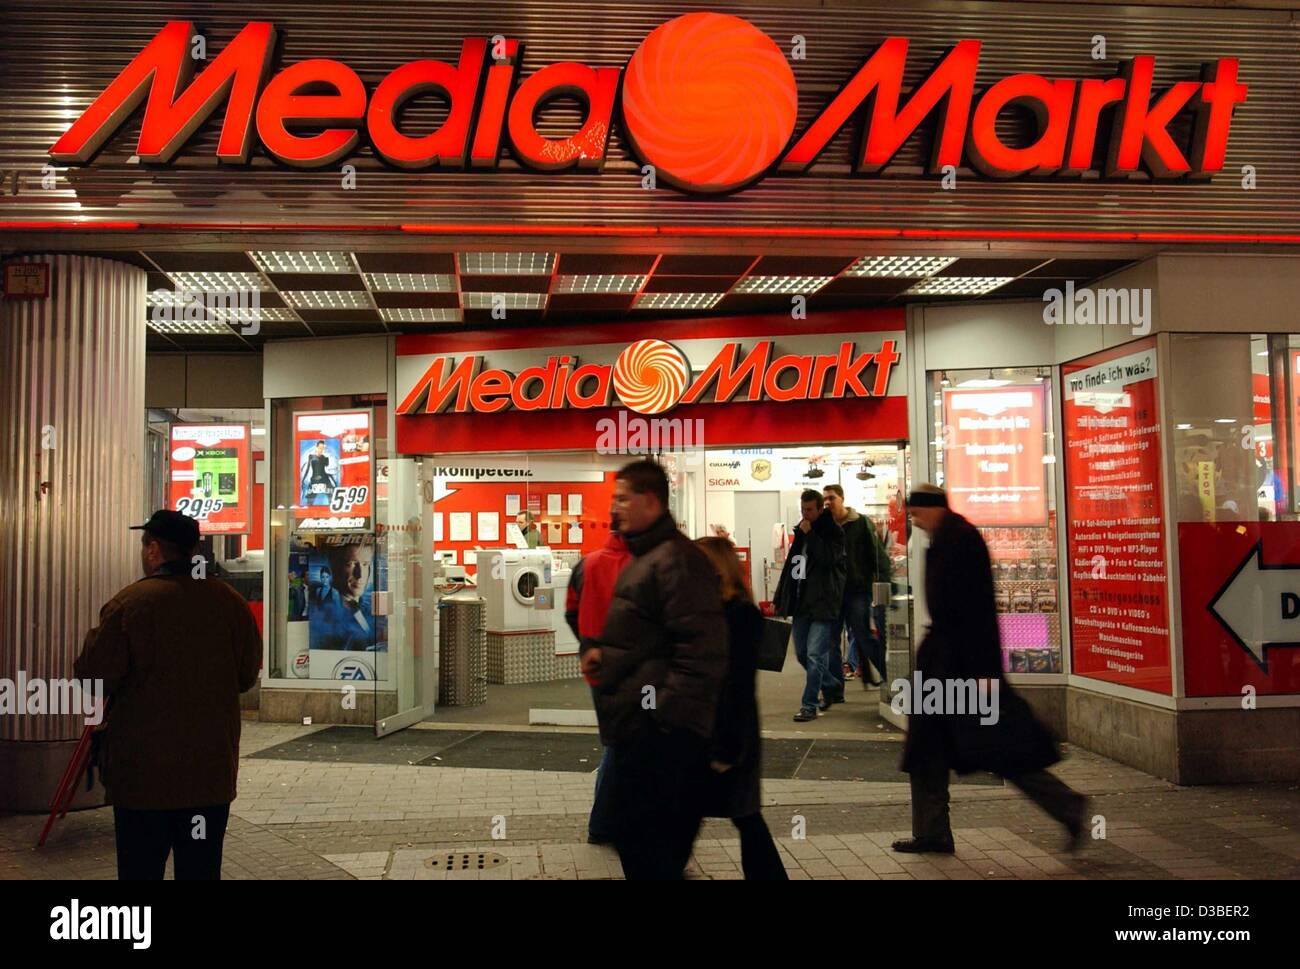 (dpa) - The entrance of the MediaMarkt shop chain in Cologne d2a3266a6b61